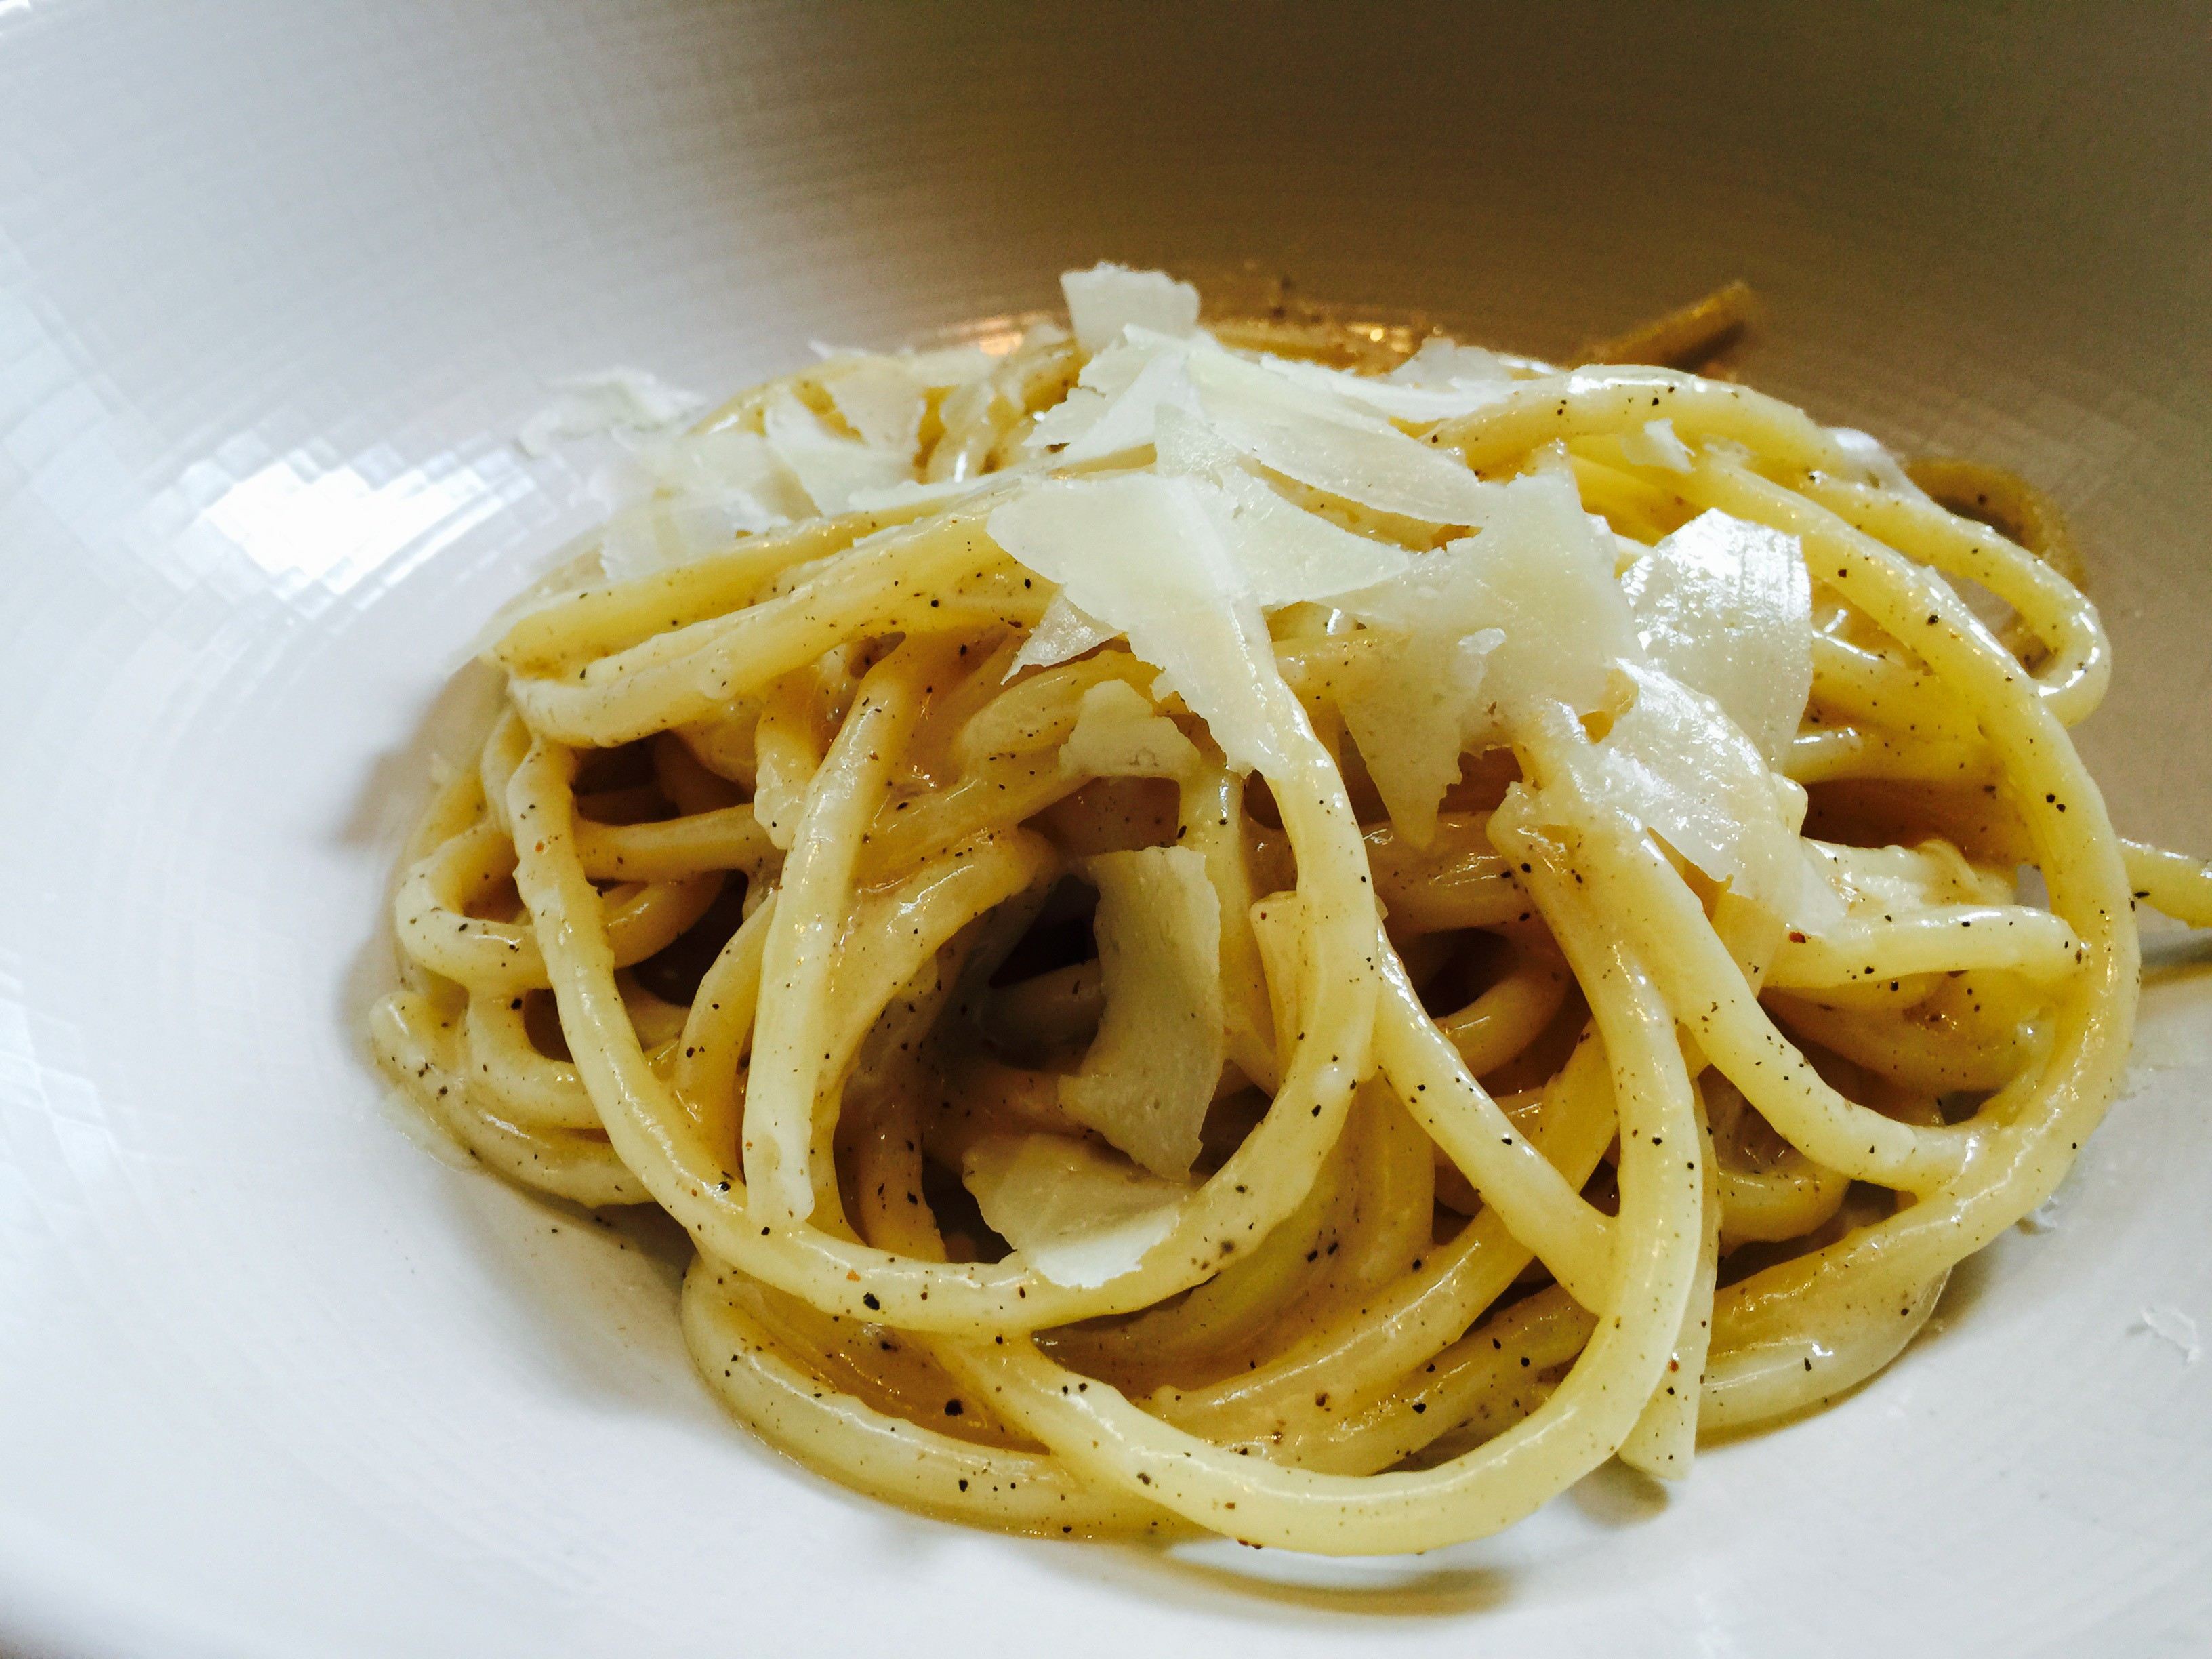 Bucatini bathed in butter, black pepper, and Italian cheese